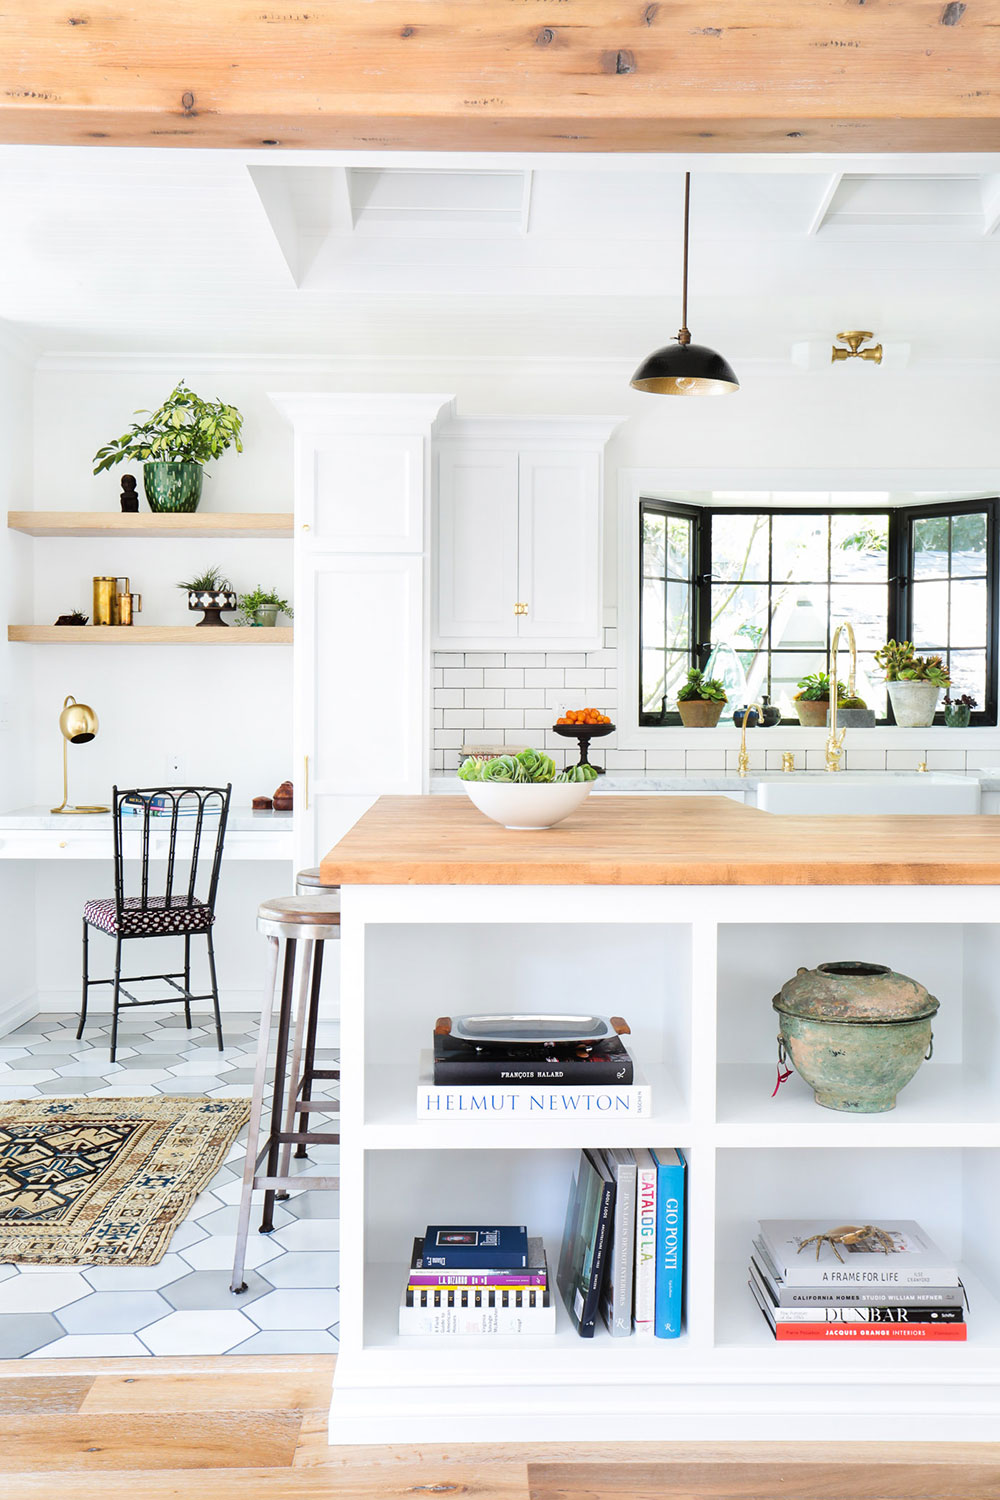 35 Bright California-Style Kitchens - Gleaming white surfaces, plenty of raw woods, and enviable natural light—these are some of the defining characteristics of a California-style kitchen. Whether these spaces are in the Golden State or not, they all share the same enviable design motif that's sure to cheer up any visitor (or home chef). Browse through 35 of our favorites.